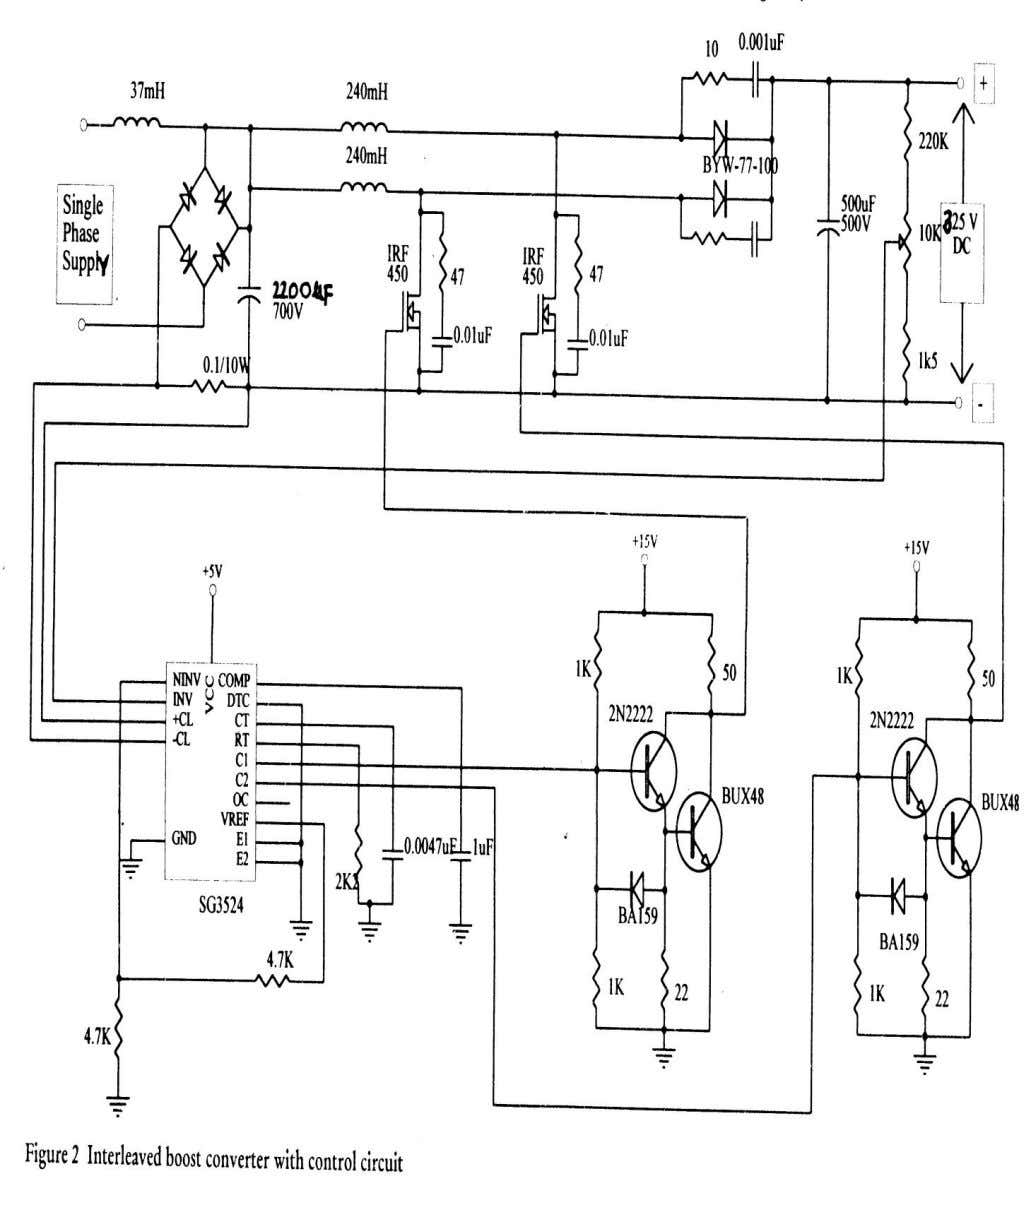 THREE PHASE PWM INVERTER WITH CONTROL CIRCUIT 2